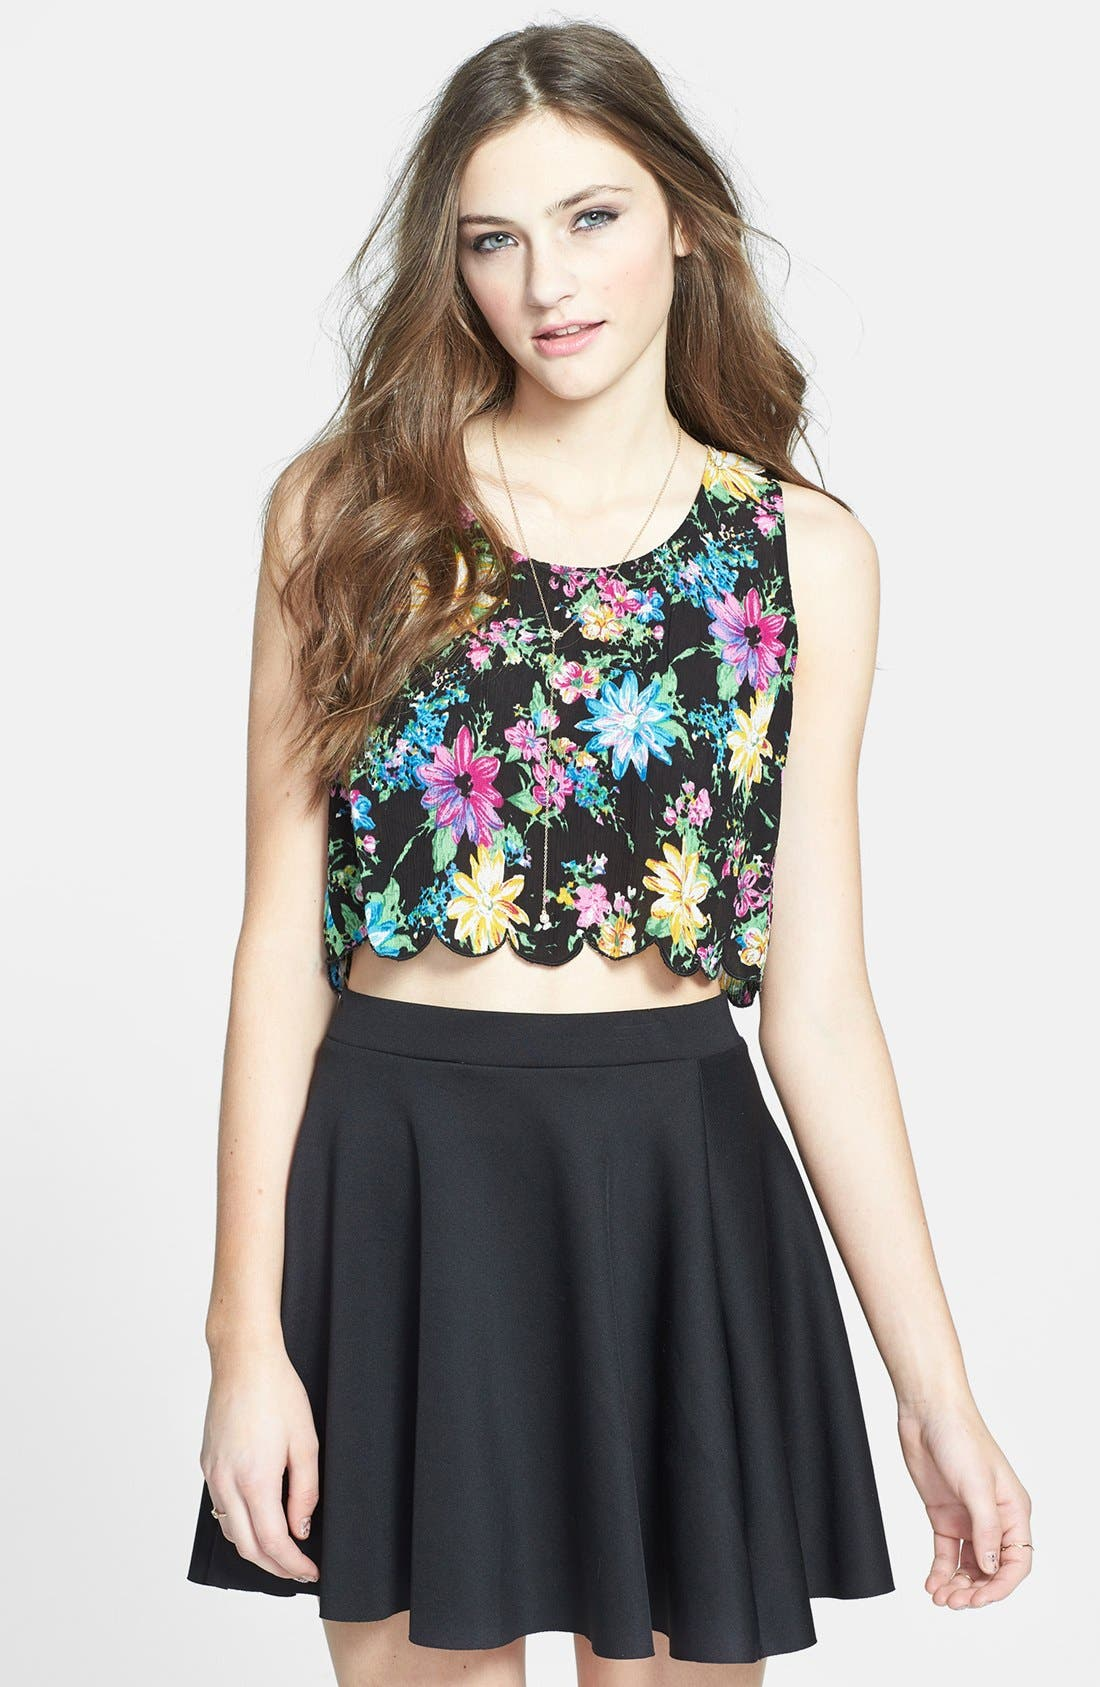 Main Image - Lush Scalloped Floral Crop Top (Juniors) (Online Only)